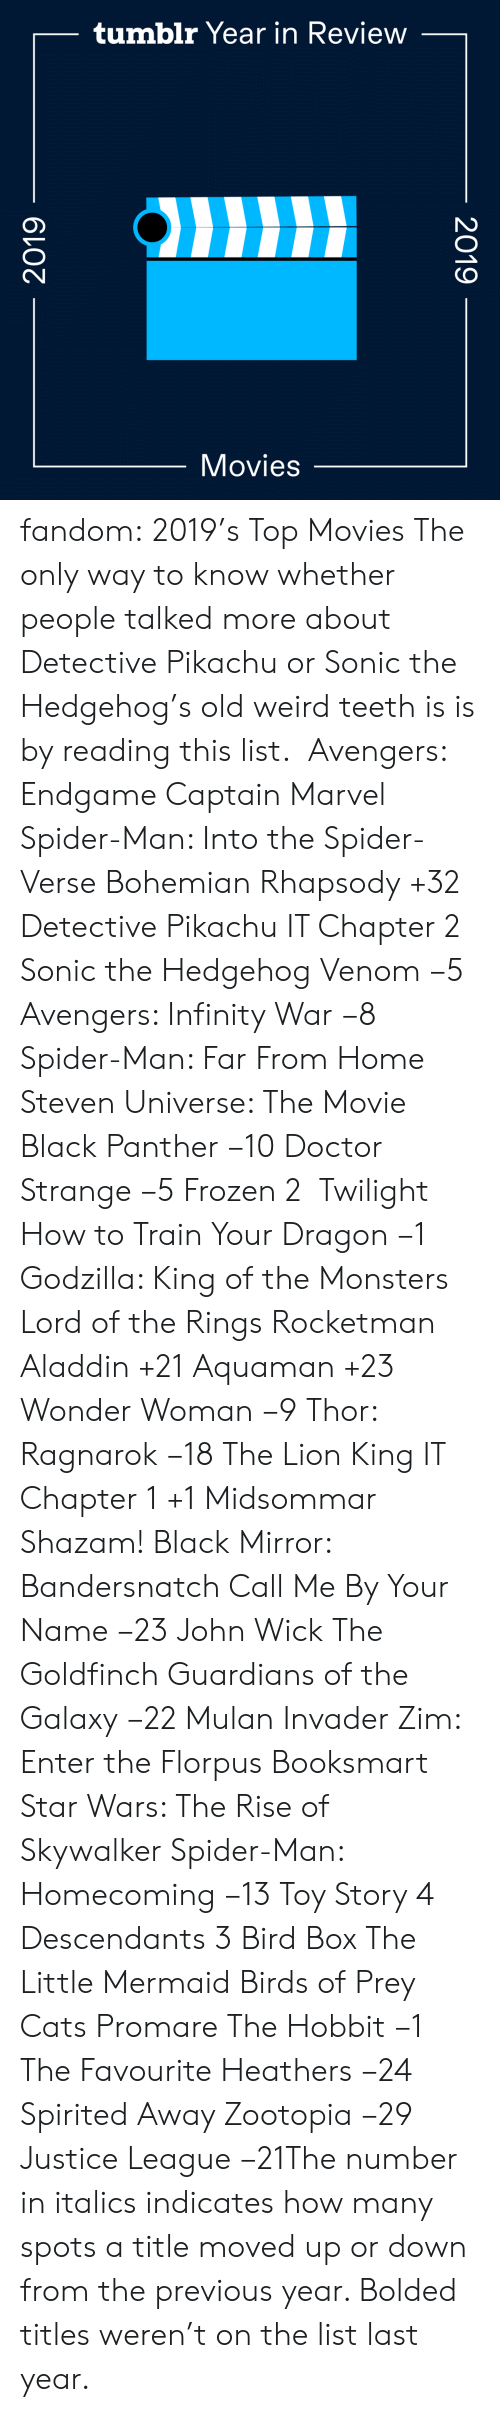 monsters: tumblr Year in Review  Movies  2019  2019 fandom:  2019's Top Movies  The only way to know whether people talked more about Detective Pikachu or Sonic the Hedgehog's old weird teeth is is by reading this list.   Avengers: Endgame  Captain Marvel  Spider-Man: Into the Spider-Verse  Bohemian Rhapsody +32  Detective Pikachu  IT Chapter 2  Sonic the Hedgehog  Venom −5  Avengers: Infinity War −8  Spider-Man: Far From Home  Steven Universe: The Movie  Black Panther −10  Doctor Strange −5  Frozen 2   Twilight  How to Train Your Dragon −1  Godzilla: King of the Monsters  Lord of the Rings  Rocketman  Aladdin +21  Aquaman +23  Wonder Woman −9  Thor: Ragnarok −18  The Lion King  IT Chapter 1 +1  Midsommar  Shazam!  Black Mirror: Bandersnatch  Call Me By Your Name −23  John Wick  The Goldfinch  Guardians of the Galaxy −22  Mulan  Invader Zim: Enter the Florpus  Booksmart  Star Wars: The Rise of Skywalker  Spider-Man: Homecoming −13  Toy Story 4  Descendants 3  Bird Box  The Little Mermaid  Birds of Prey  Cats  Promare  The Hobbit −1  The Favourite  Heathers −24  Spirited Away  Zootopia −29 Justice League −21The number in italics indicates how many spots a title moved up or down from the previous year. Bolded titles weren't on the list last year.